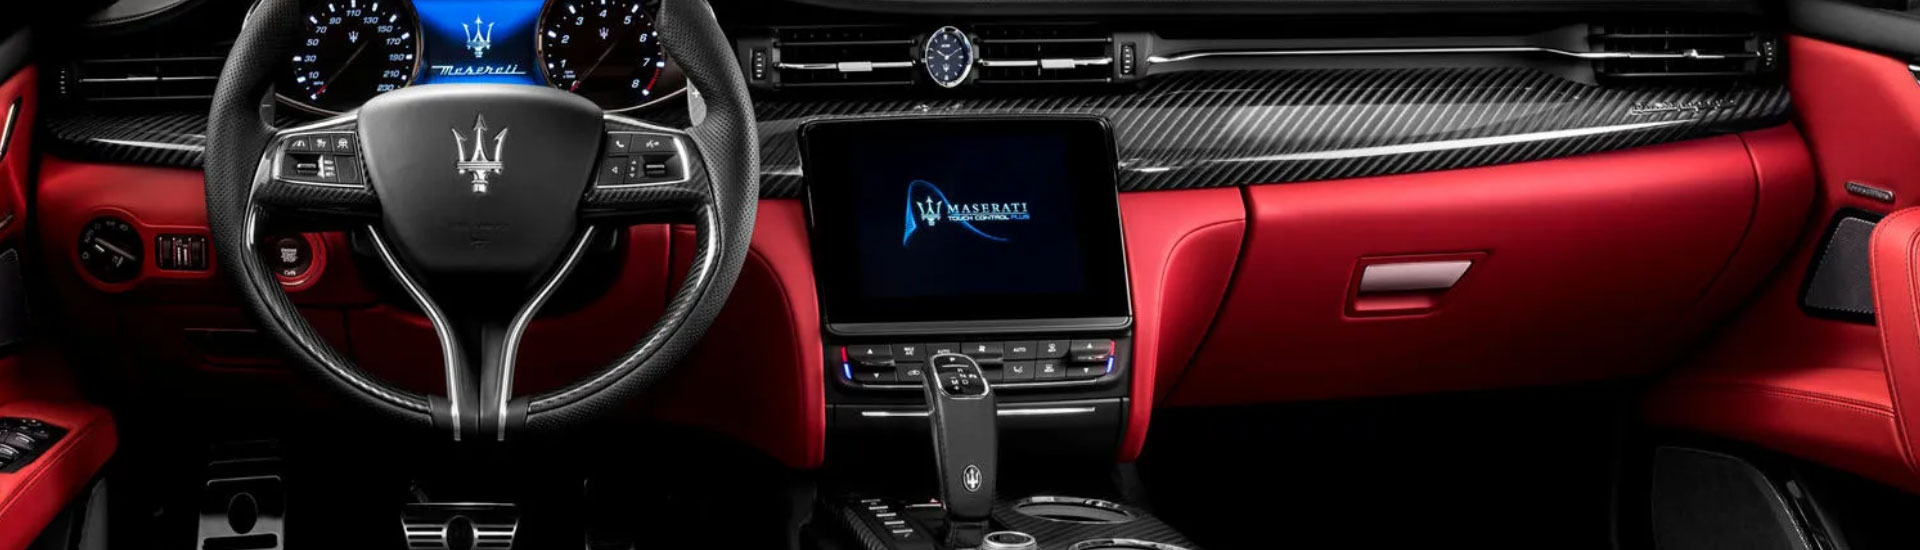 Maserati Custom Dash Kits